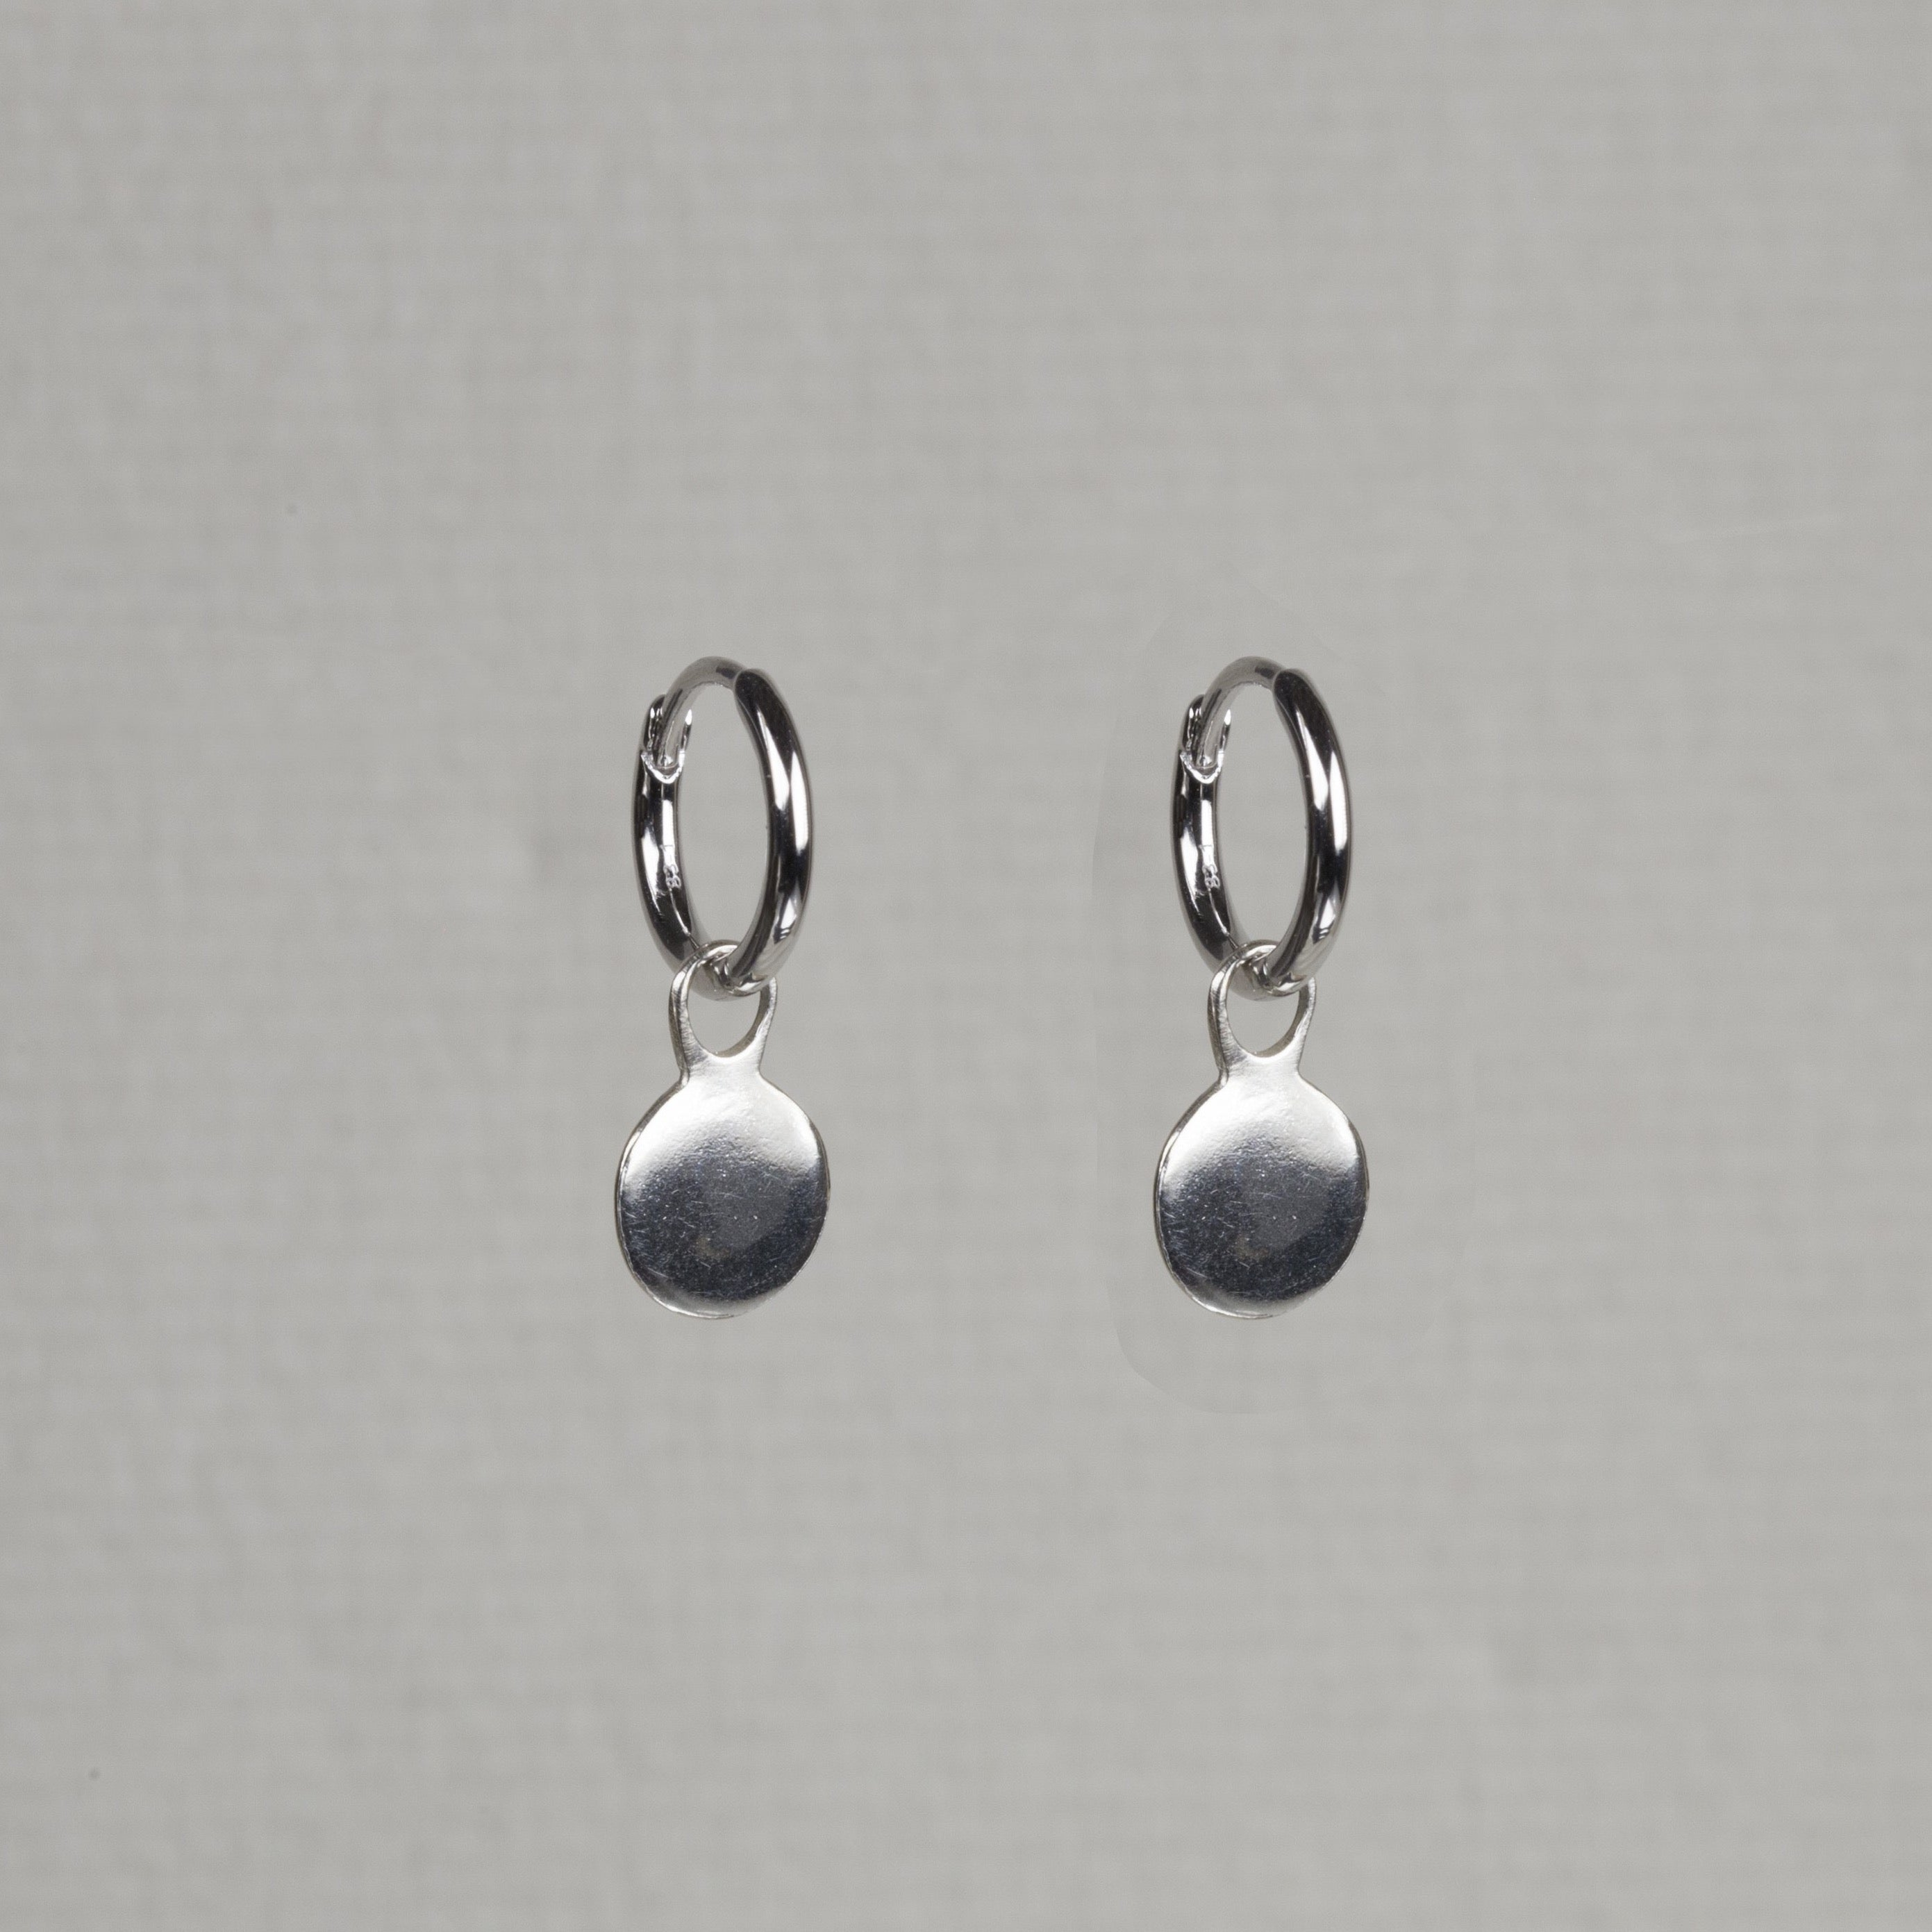 Charmed Hoop Earrings - Disc in sterling silver